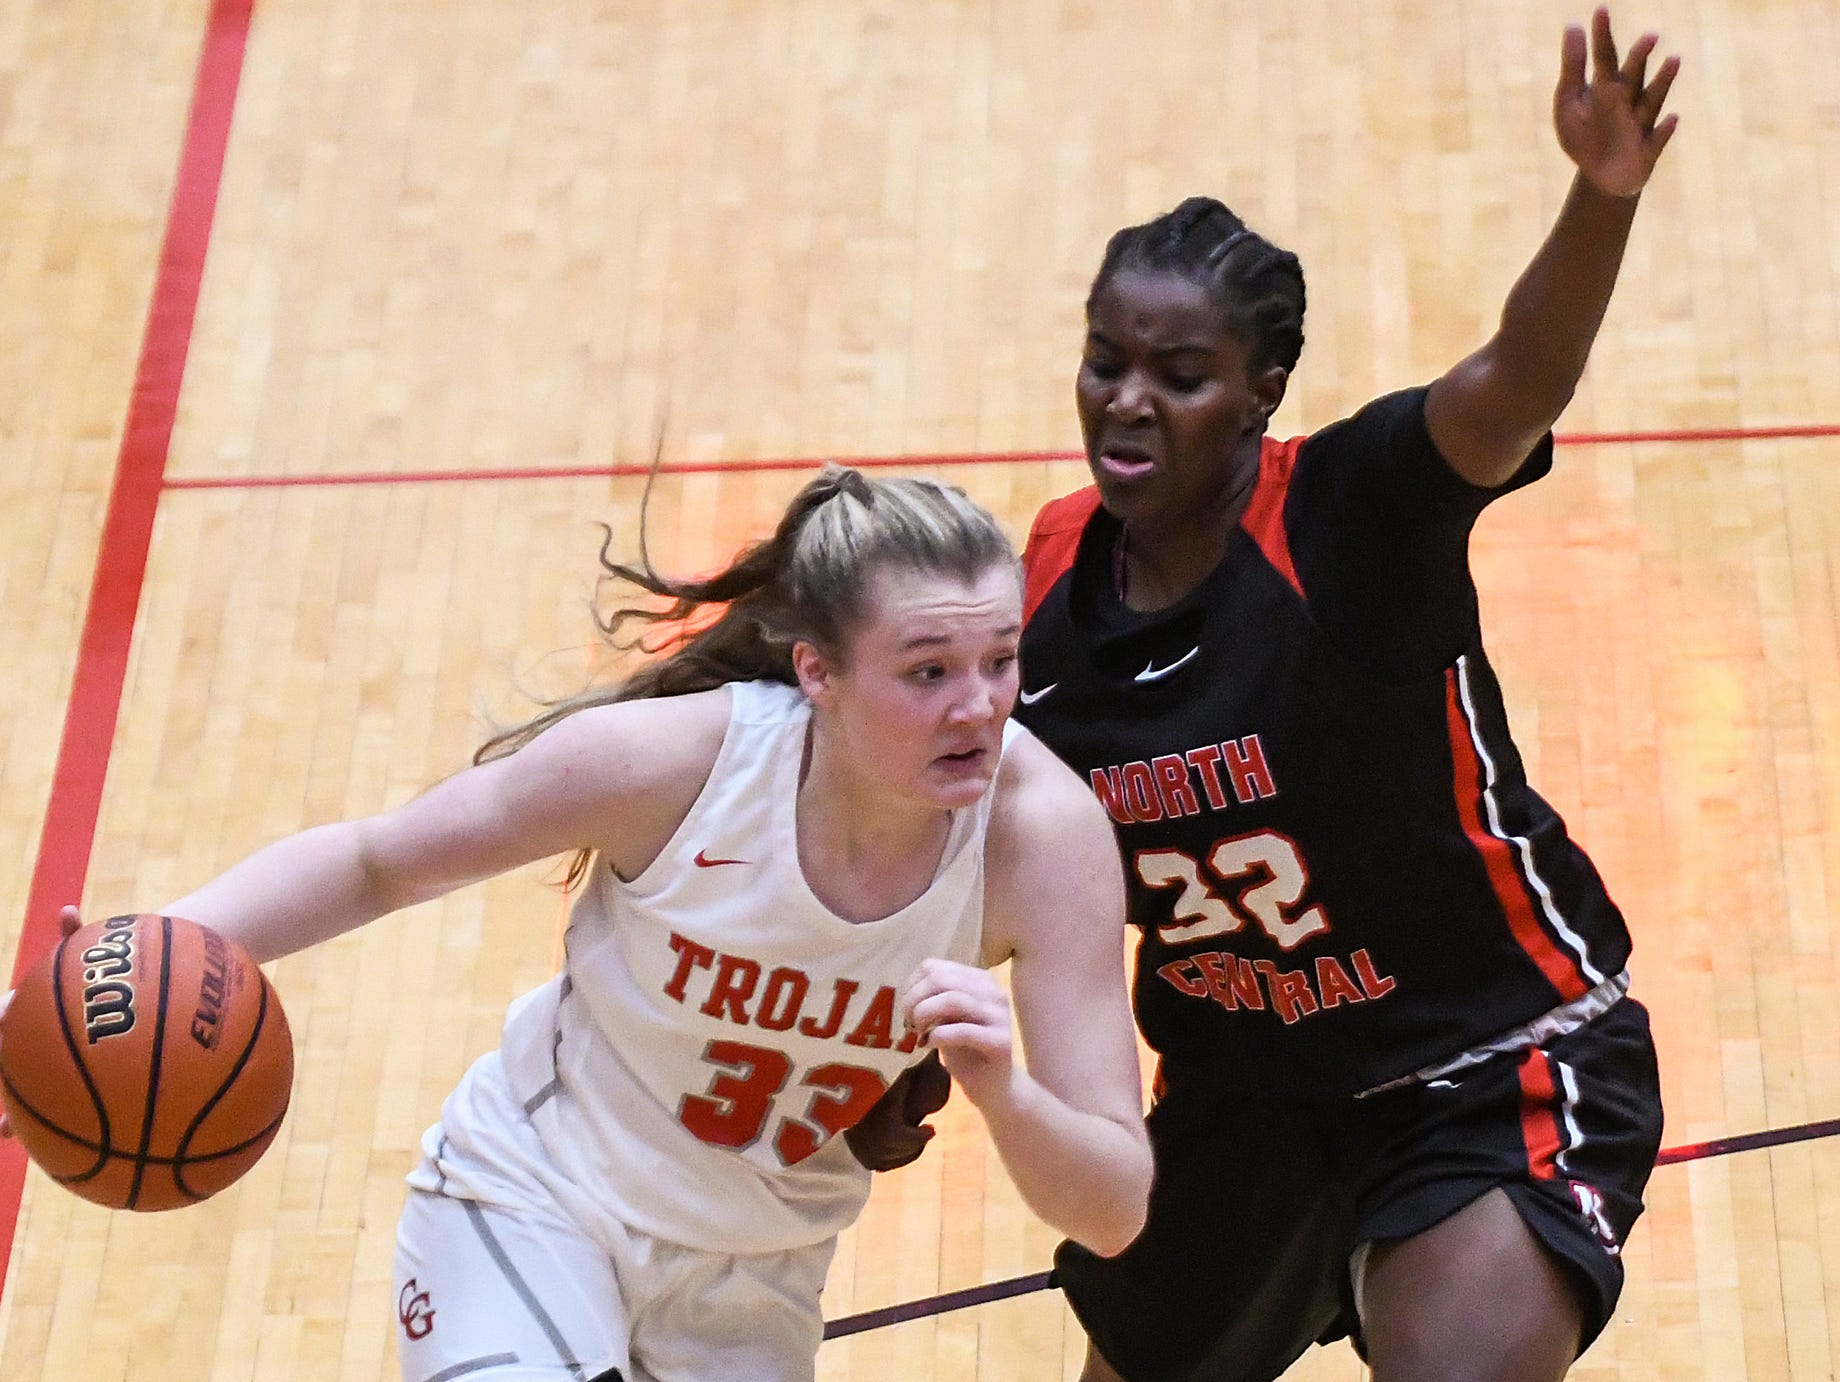 Center Grove Trojans guard Mary Wilson (33) drives the ball around North Central Panthers forward Nakaih Hunter (32) in the second half of the game at Center Grove High School in Greenwood, Ind., Thursday, Jan. 10, 2019. Center Grove defeated North Central, 51-44.